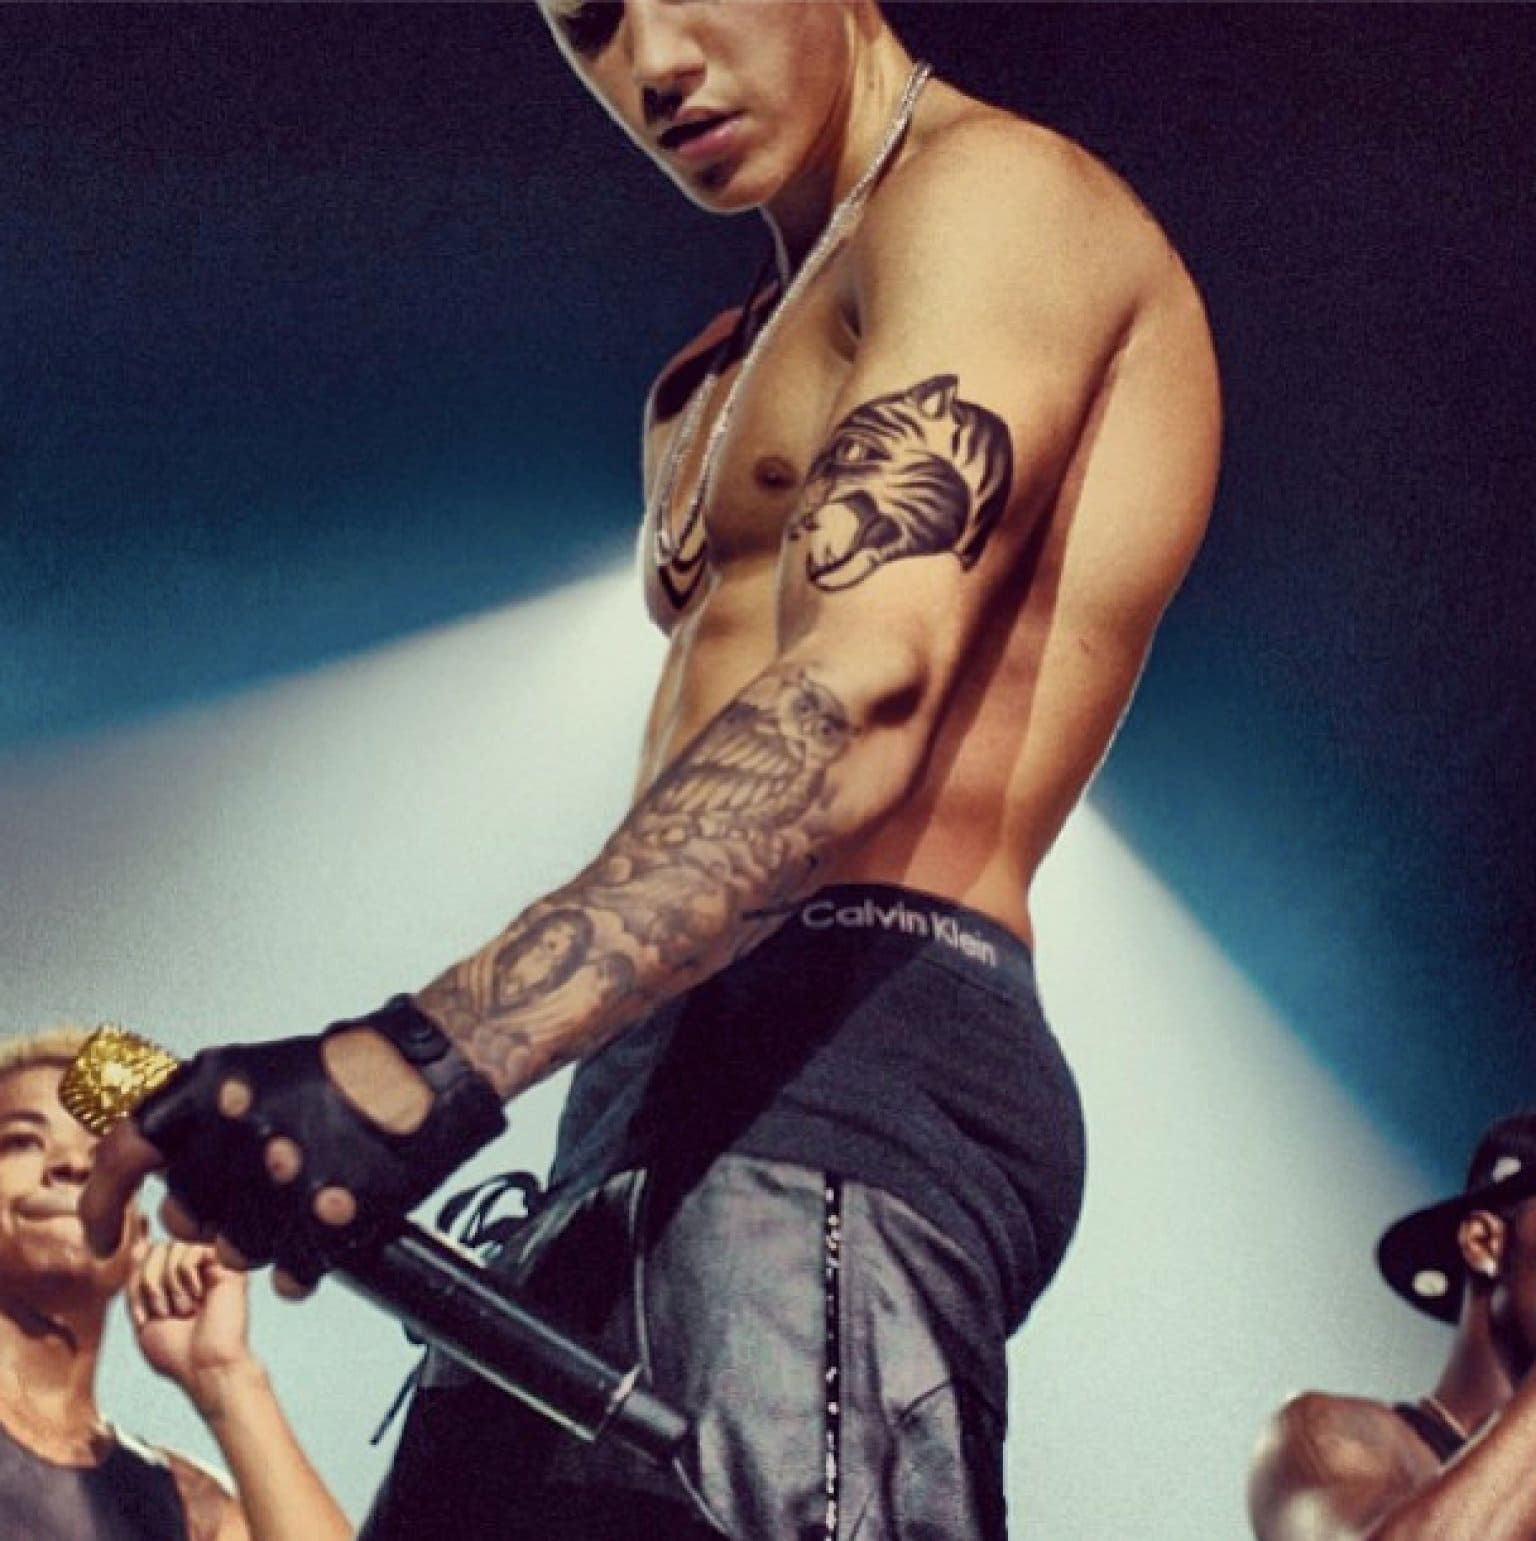 Justin Bieber Naked Twitter Reacts The Hollywood Gossip